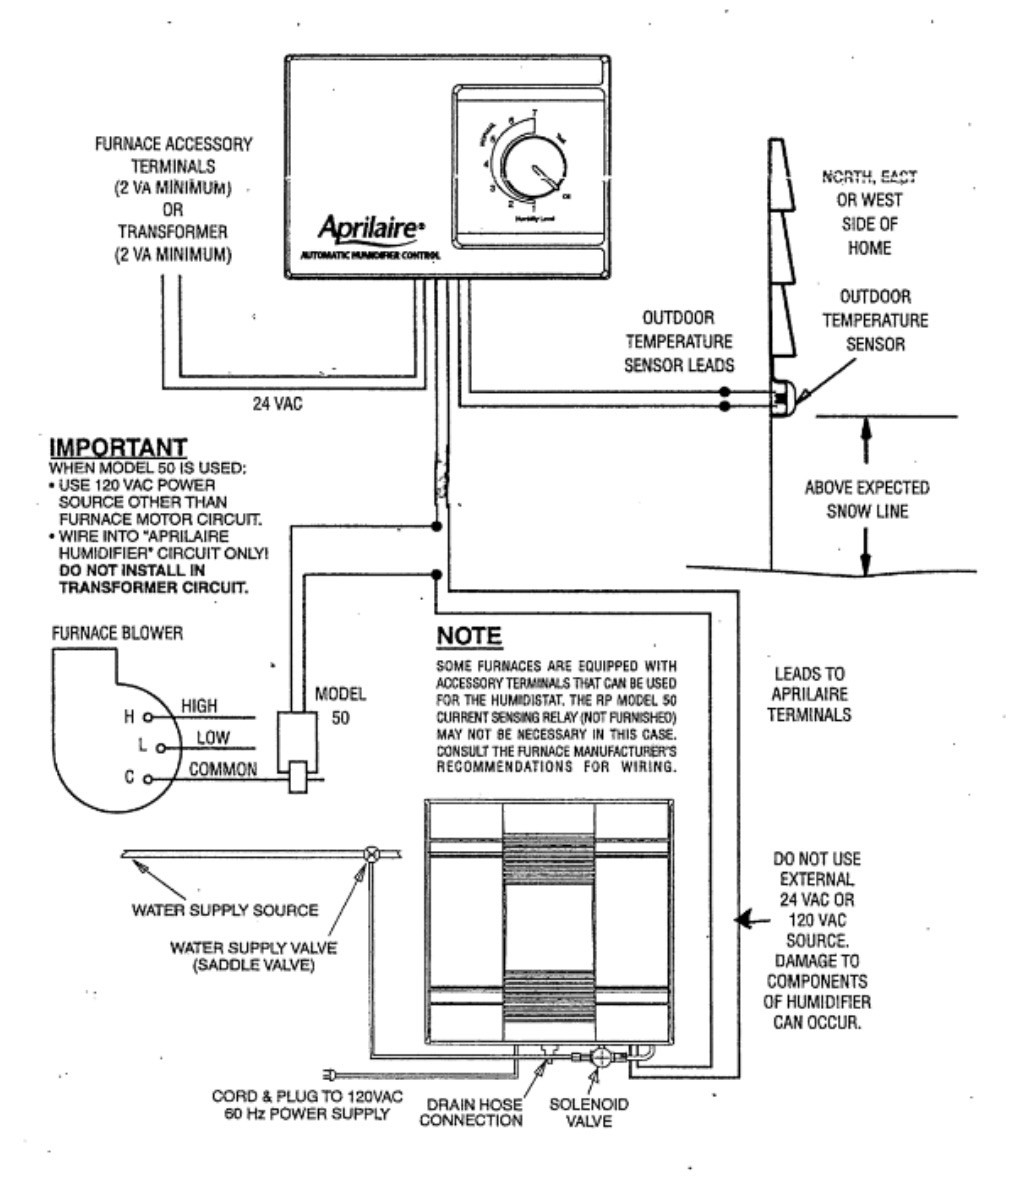 hvac 24 volt transformer wiring diagram